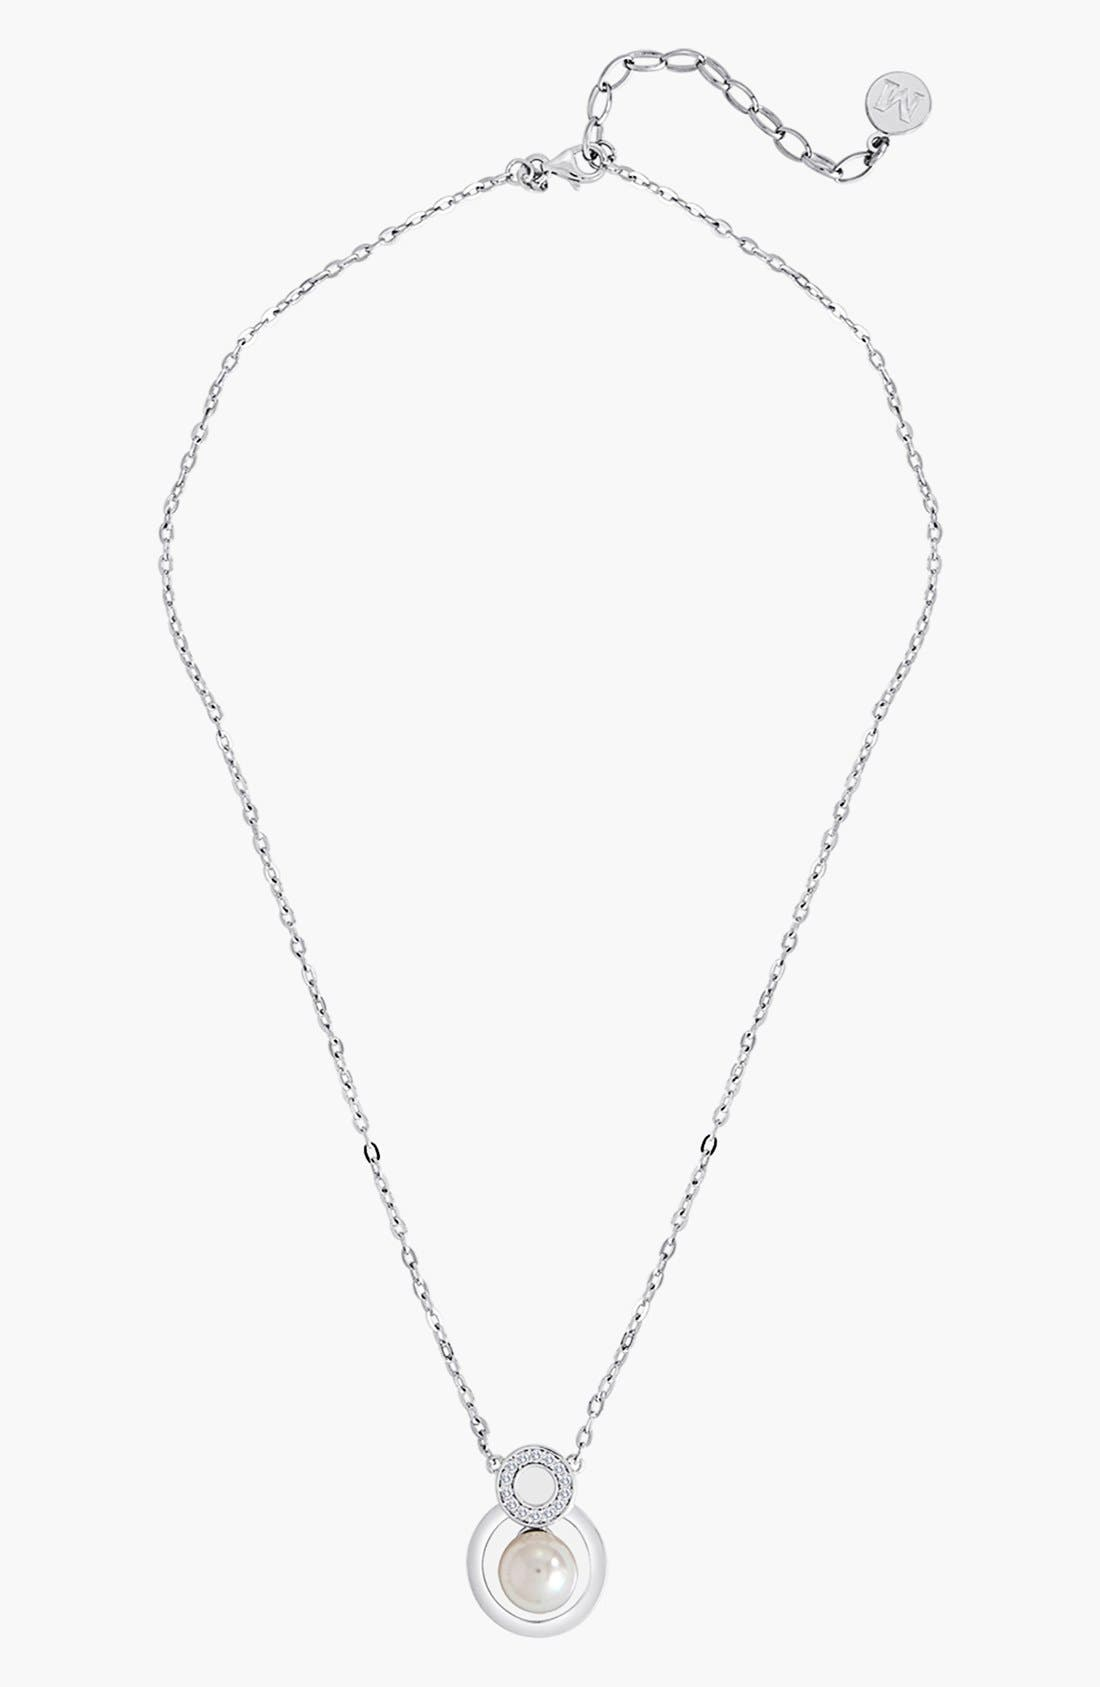 Main Image - Majorica 8mm Pearl & Crystal Pendant Necklace